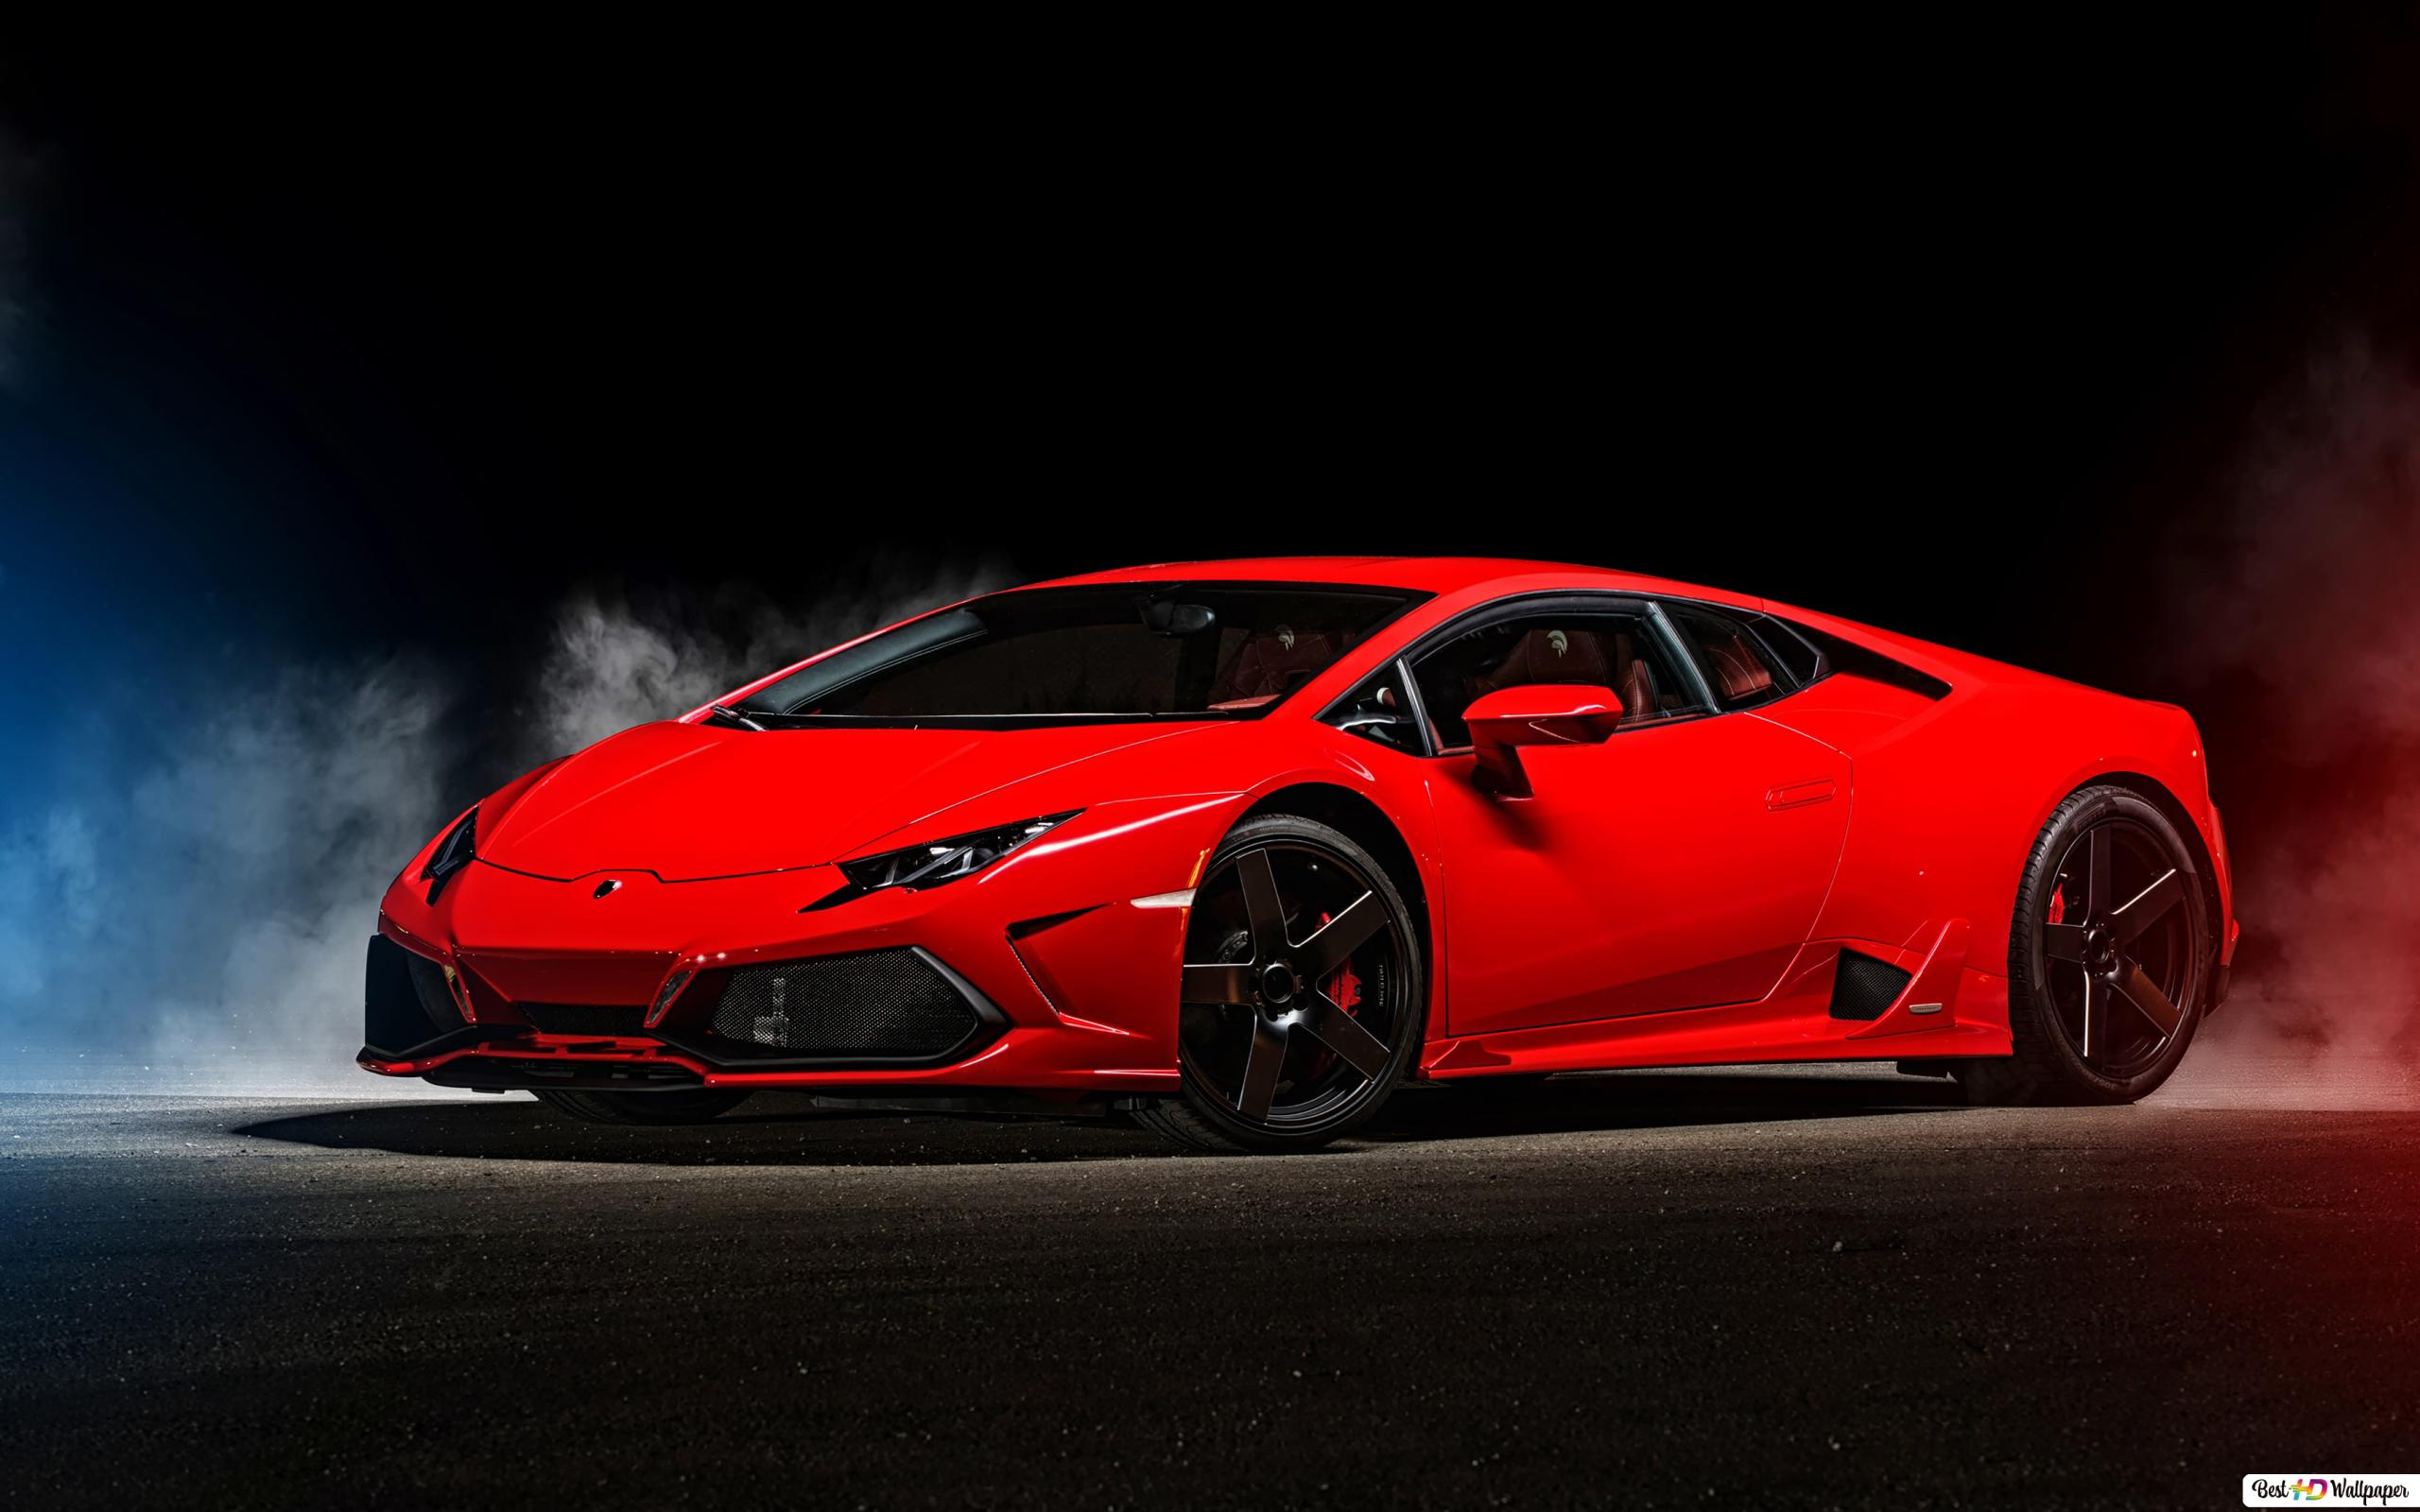 Lamborghini Huracan Avio Hd Wallpaper Download